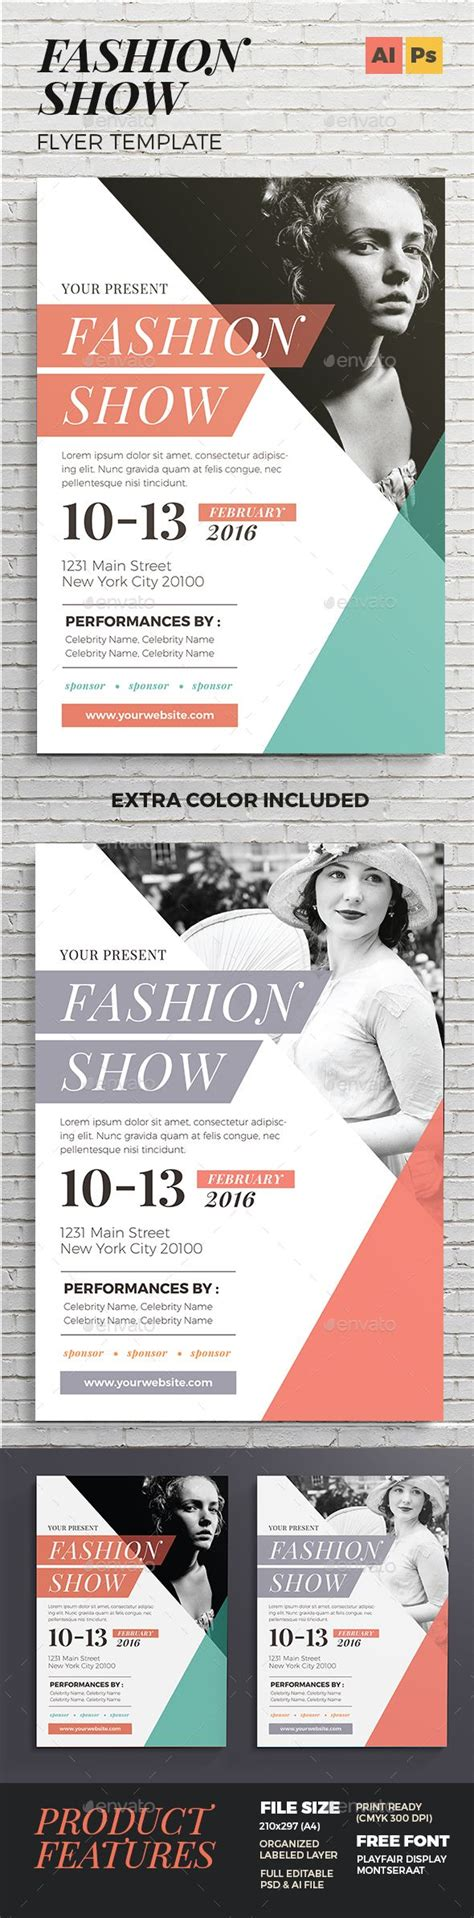 fashion show flyer the reader texts and graphics